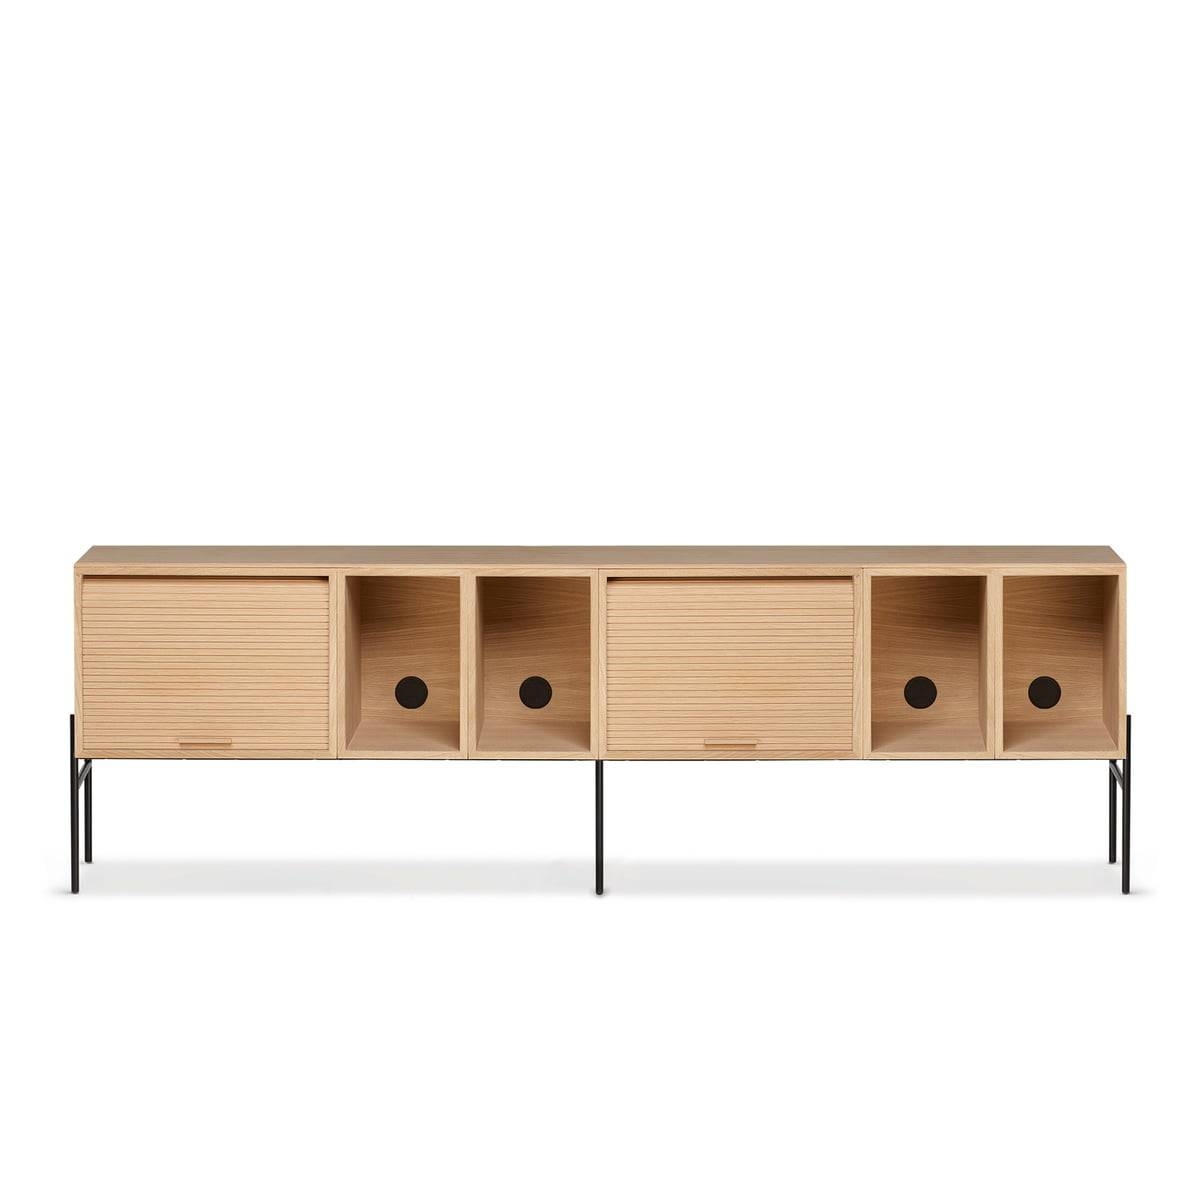 Northern - Hifive 200 sideboard, oak